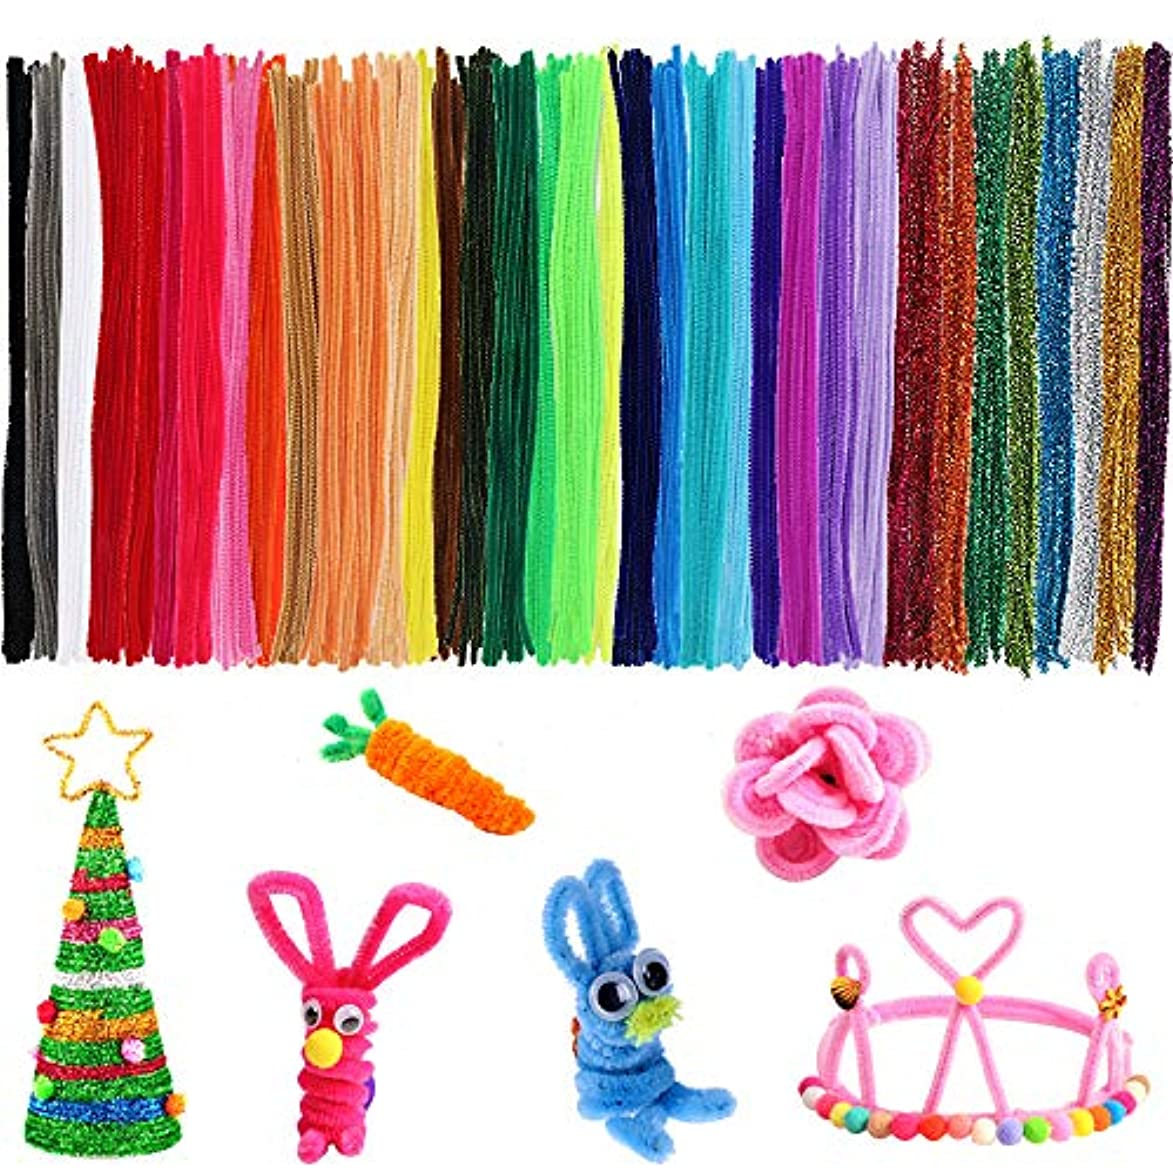 Outuxed 800 Chenille Stems Pipe Cleaners in 40 Assorted Colors (10 Shiny Colors), for DIY Arts and Craft Projects and Decorations (6mm x 12 Inches) fbn224471033253